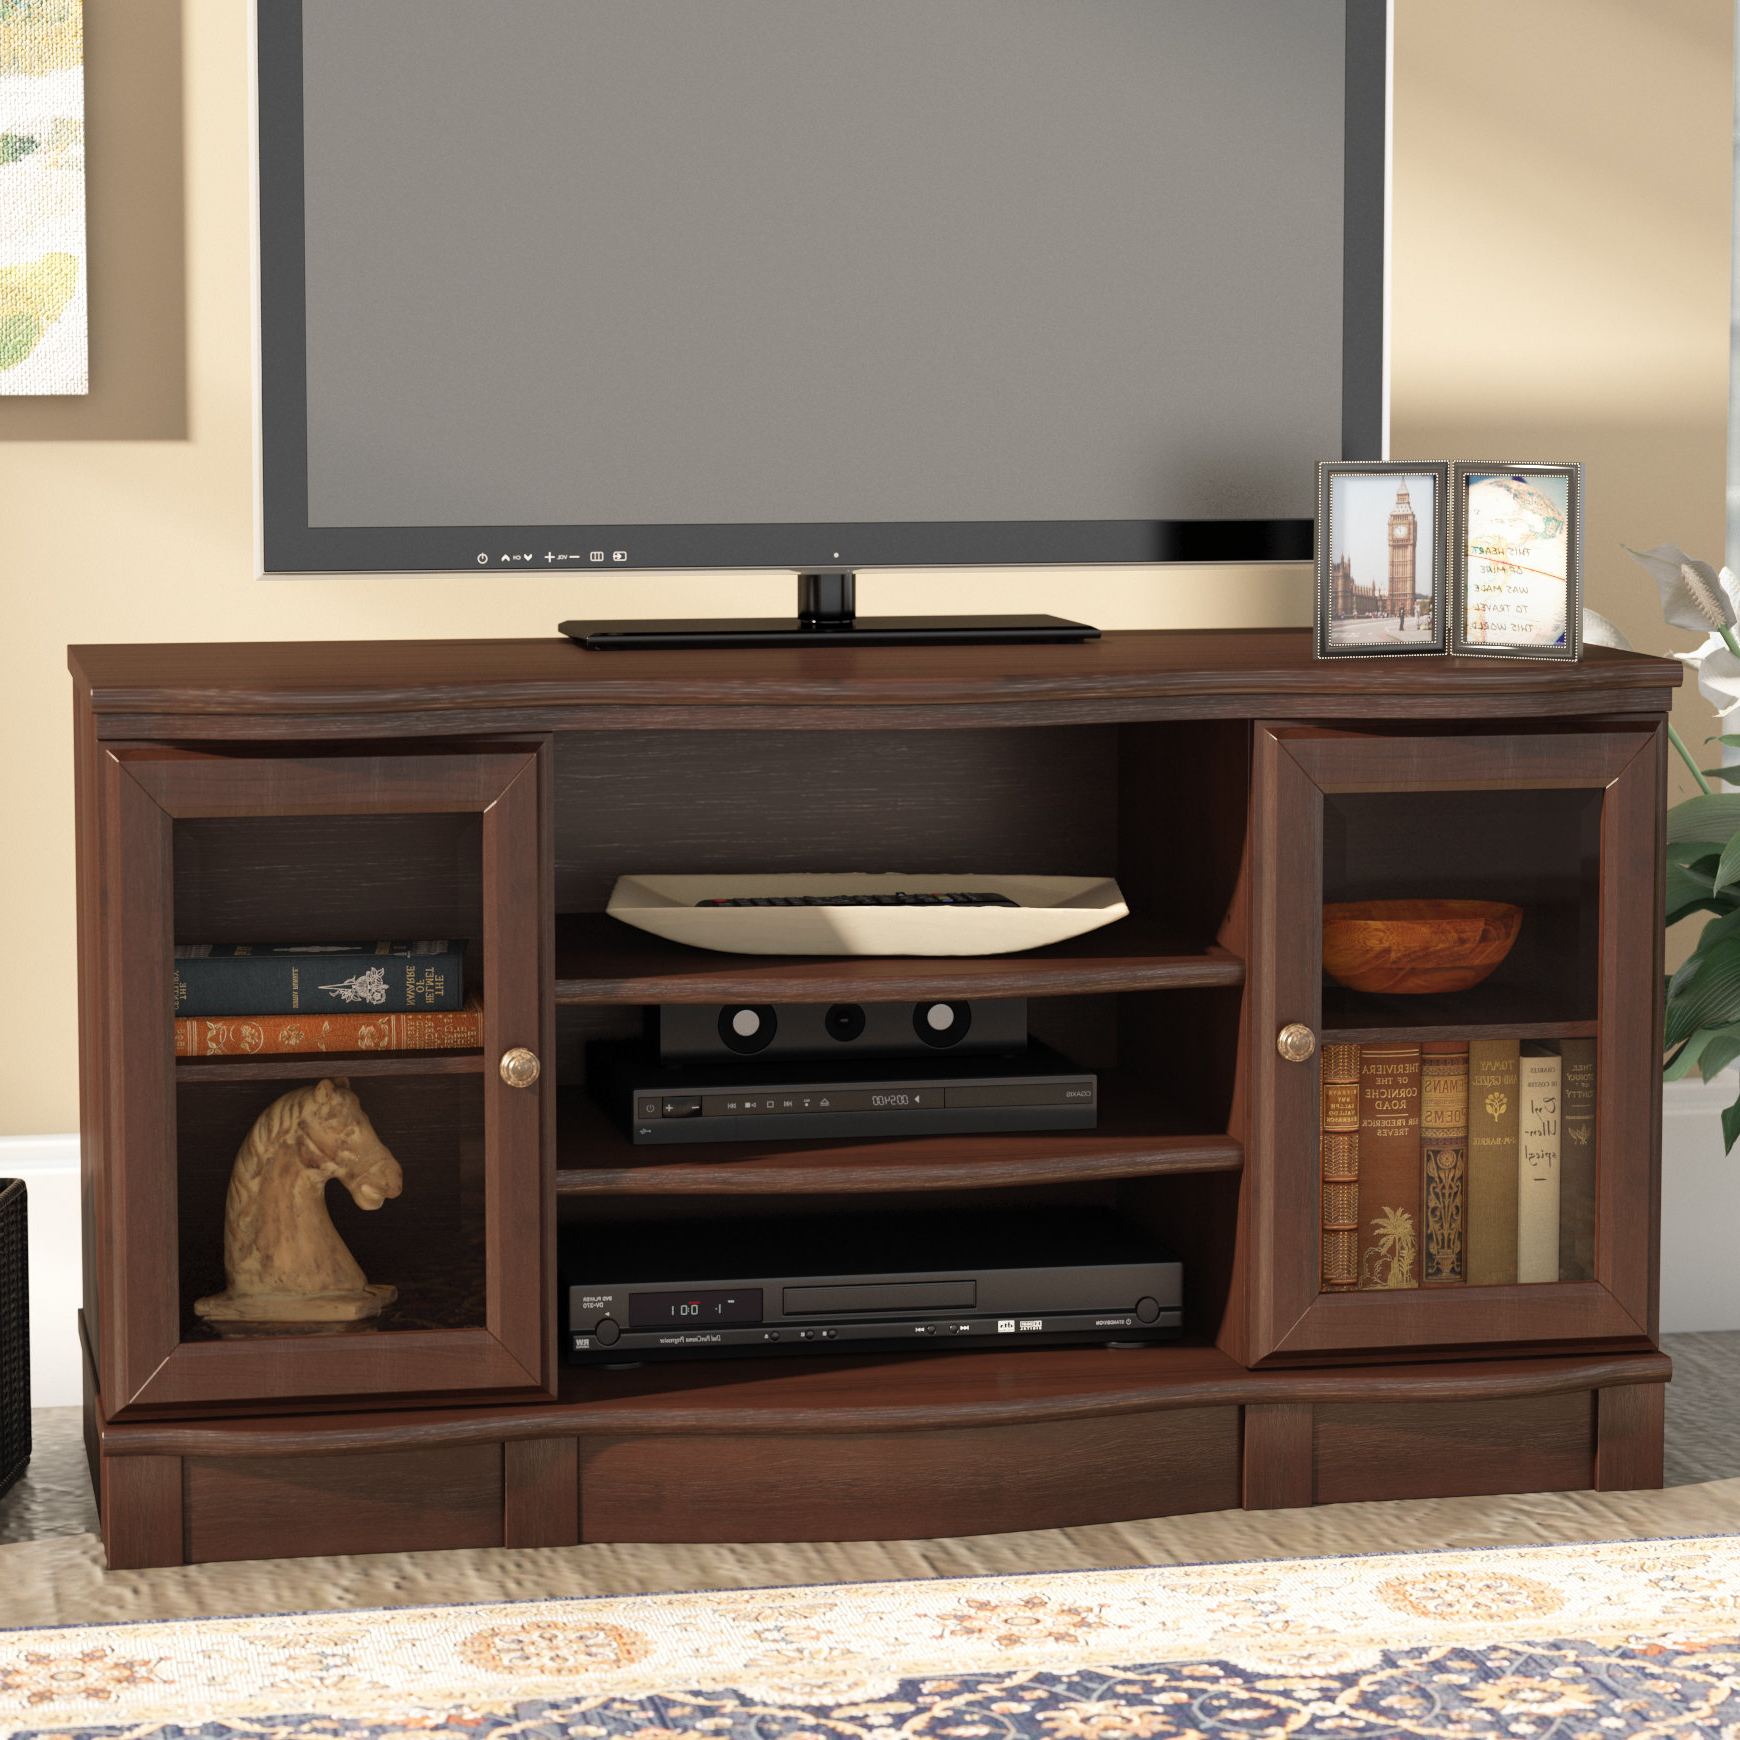 Wayfair With Regard To Widely Used Laurent 70 Inch Tv Stands (View 18 of 20)